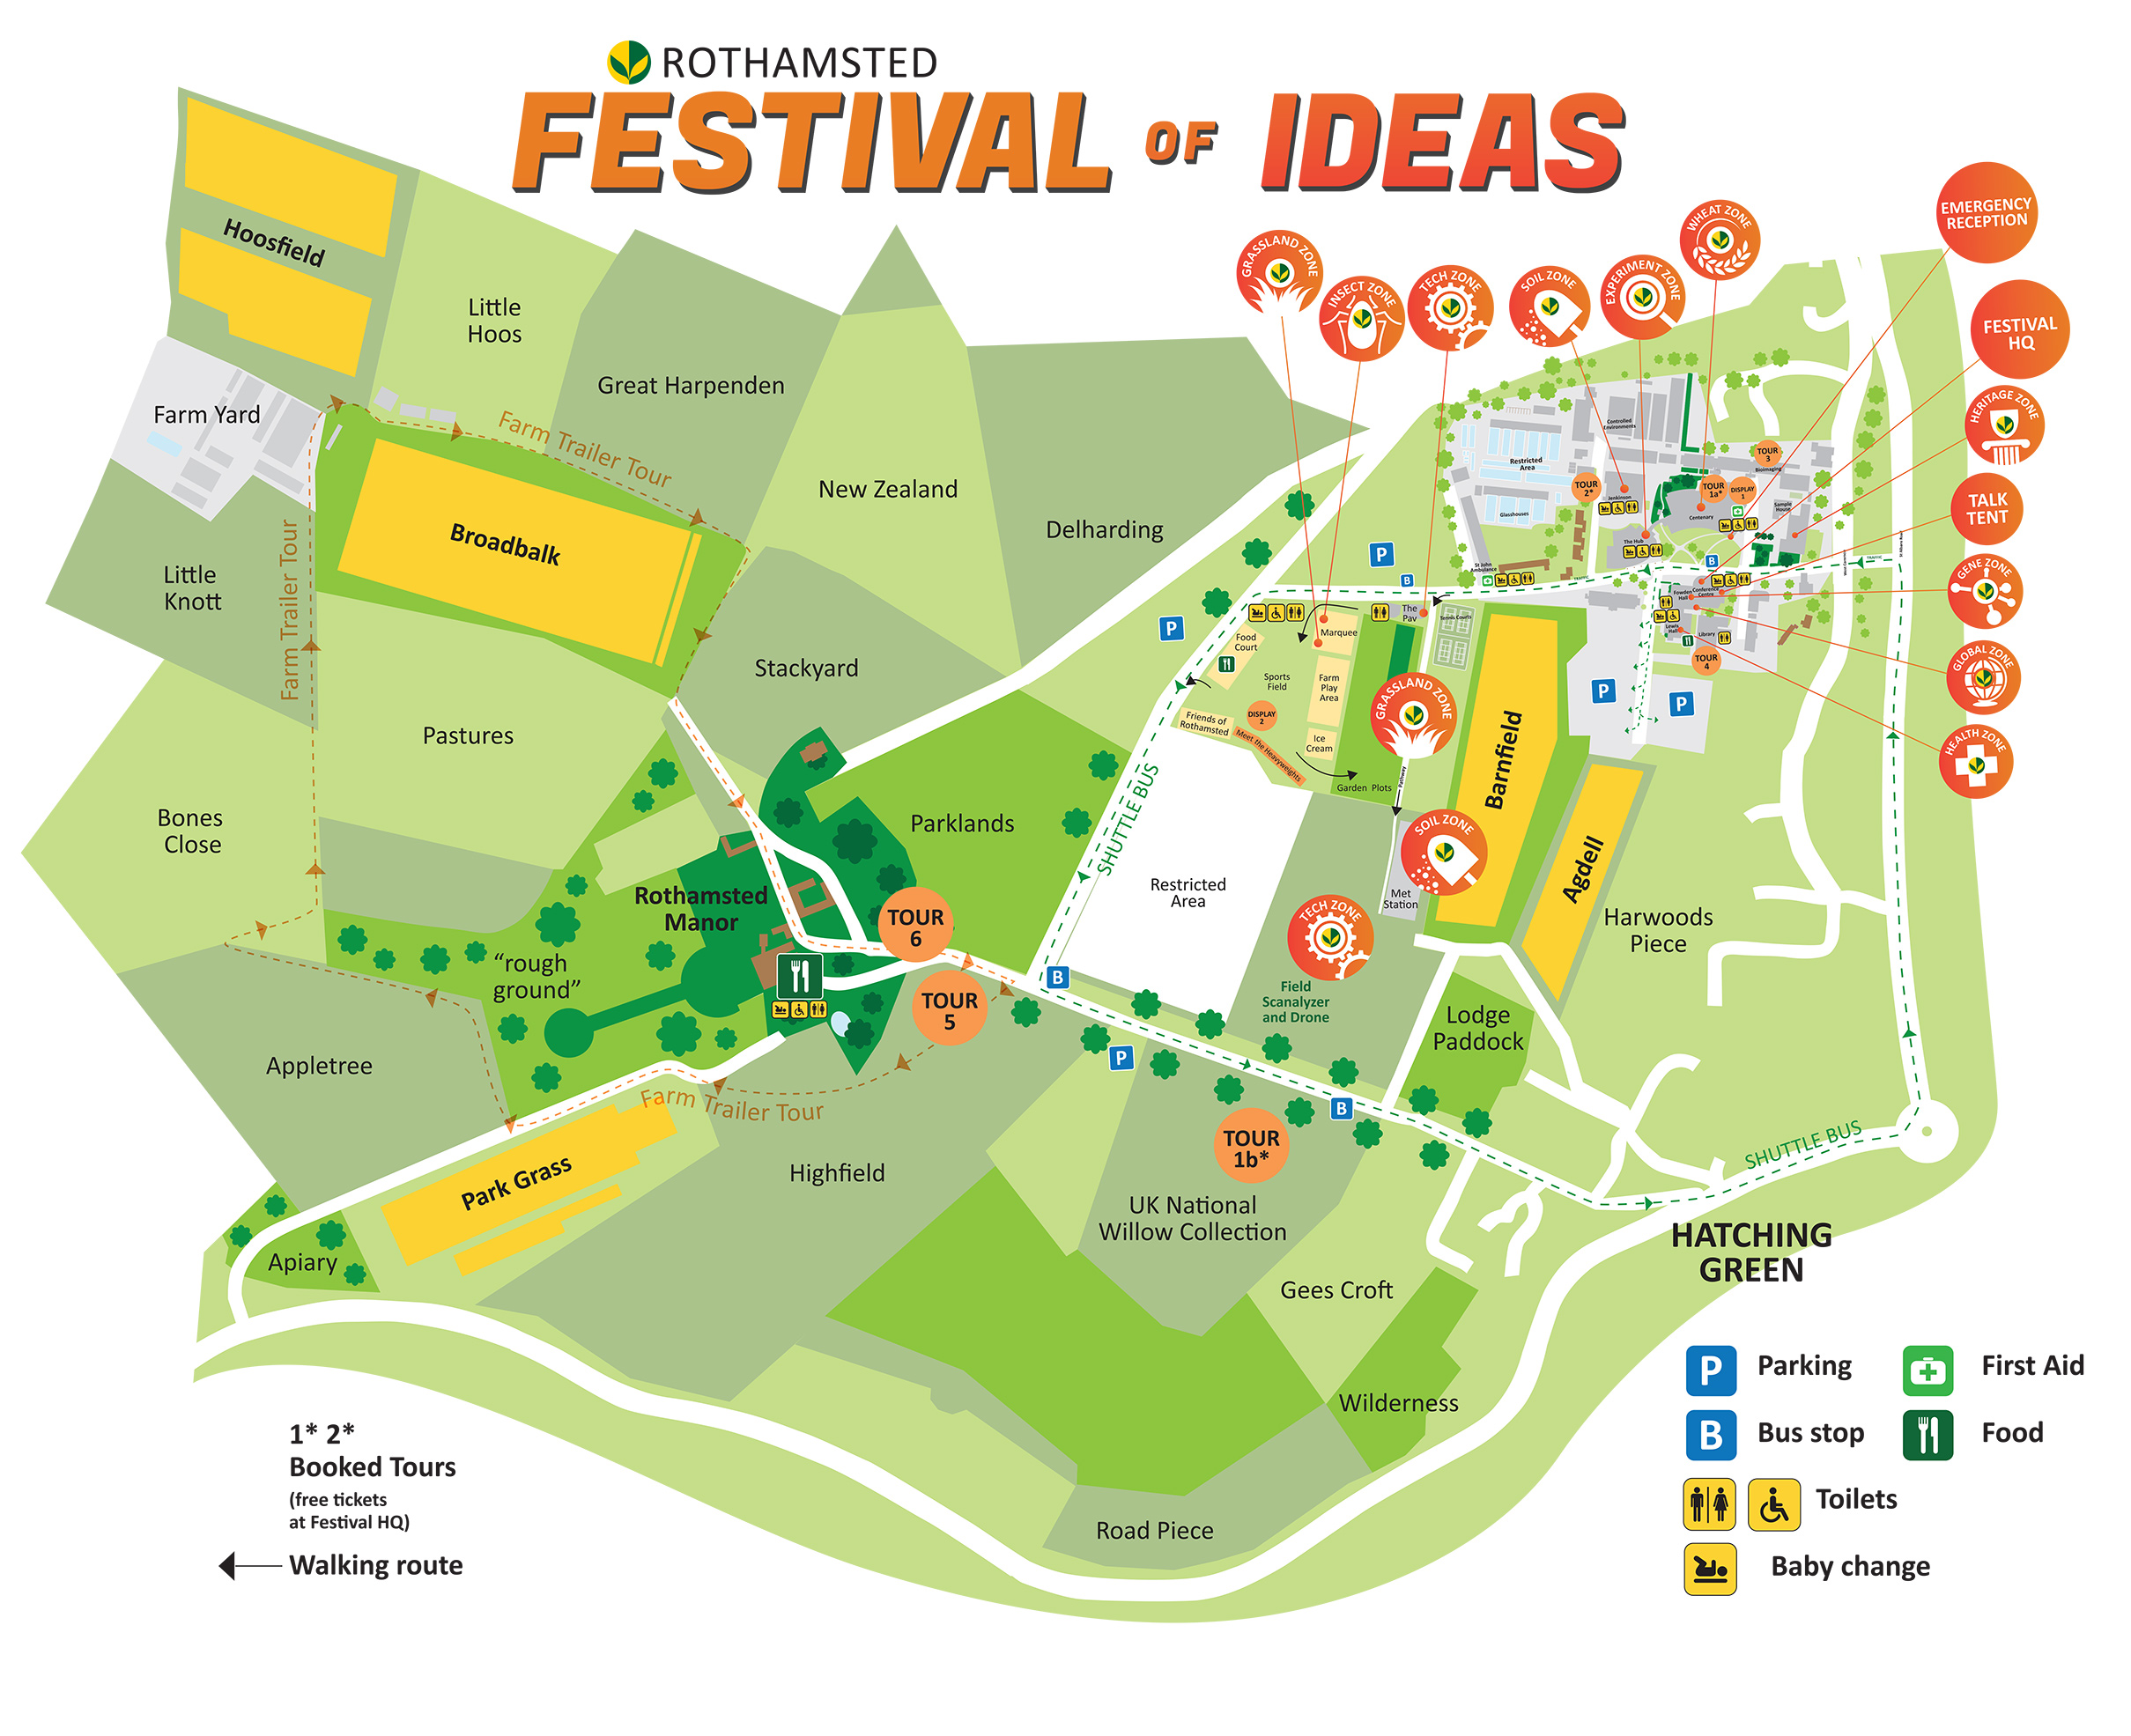 Rothamsted Festival of Ideas Map